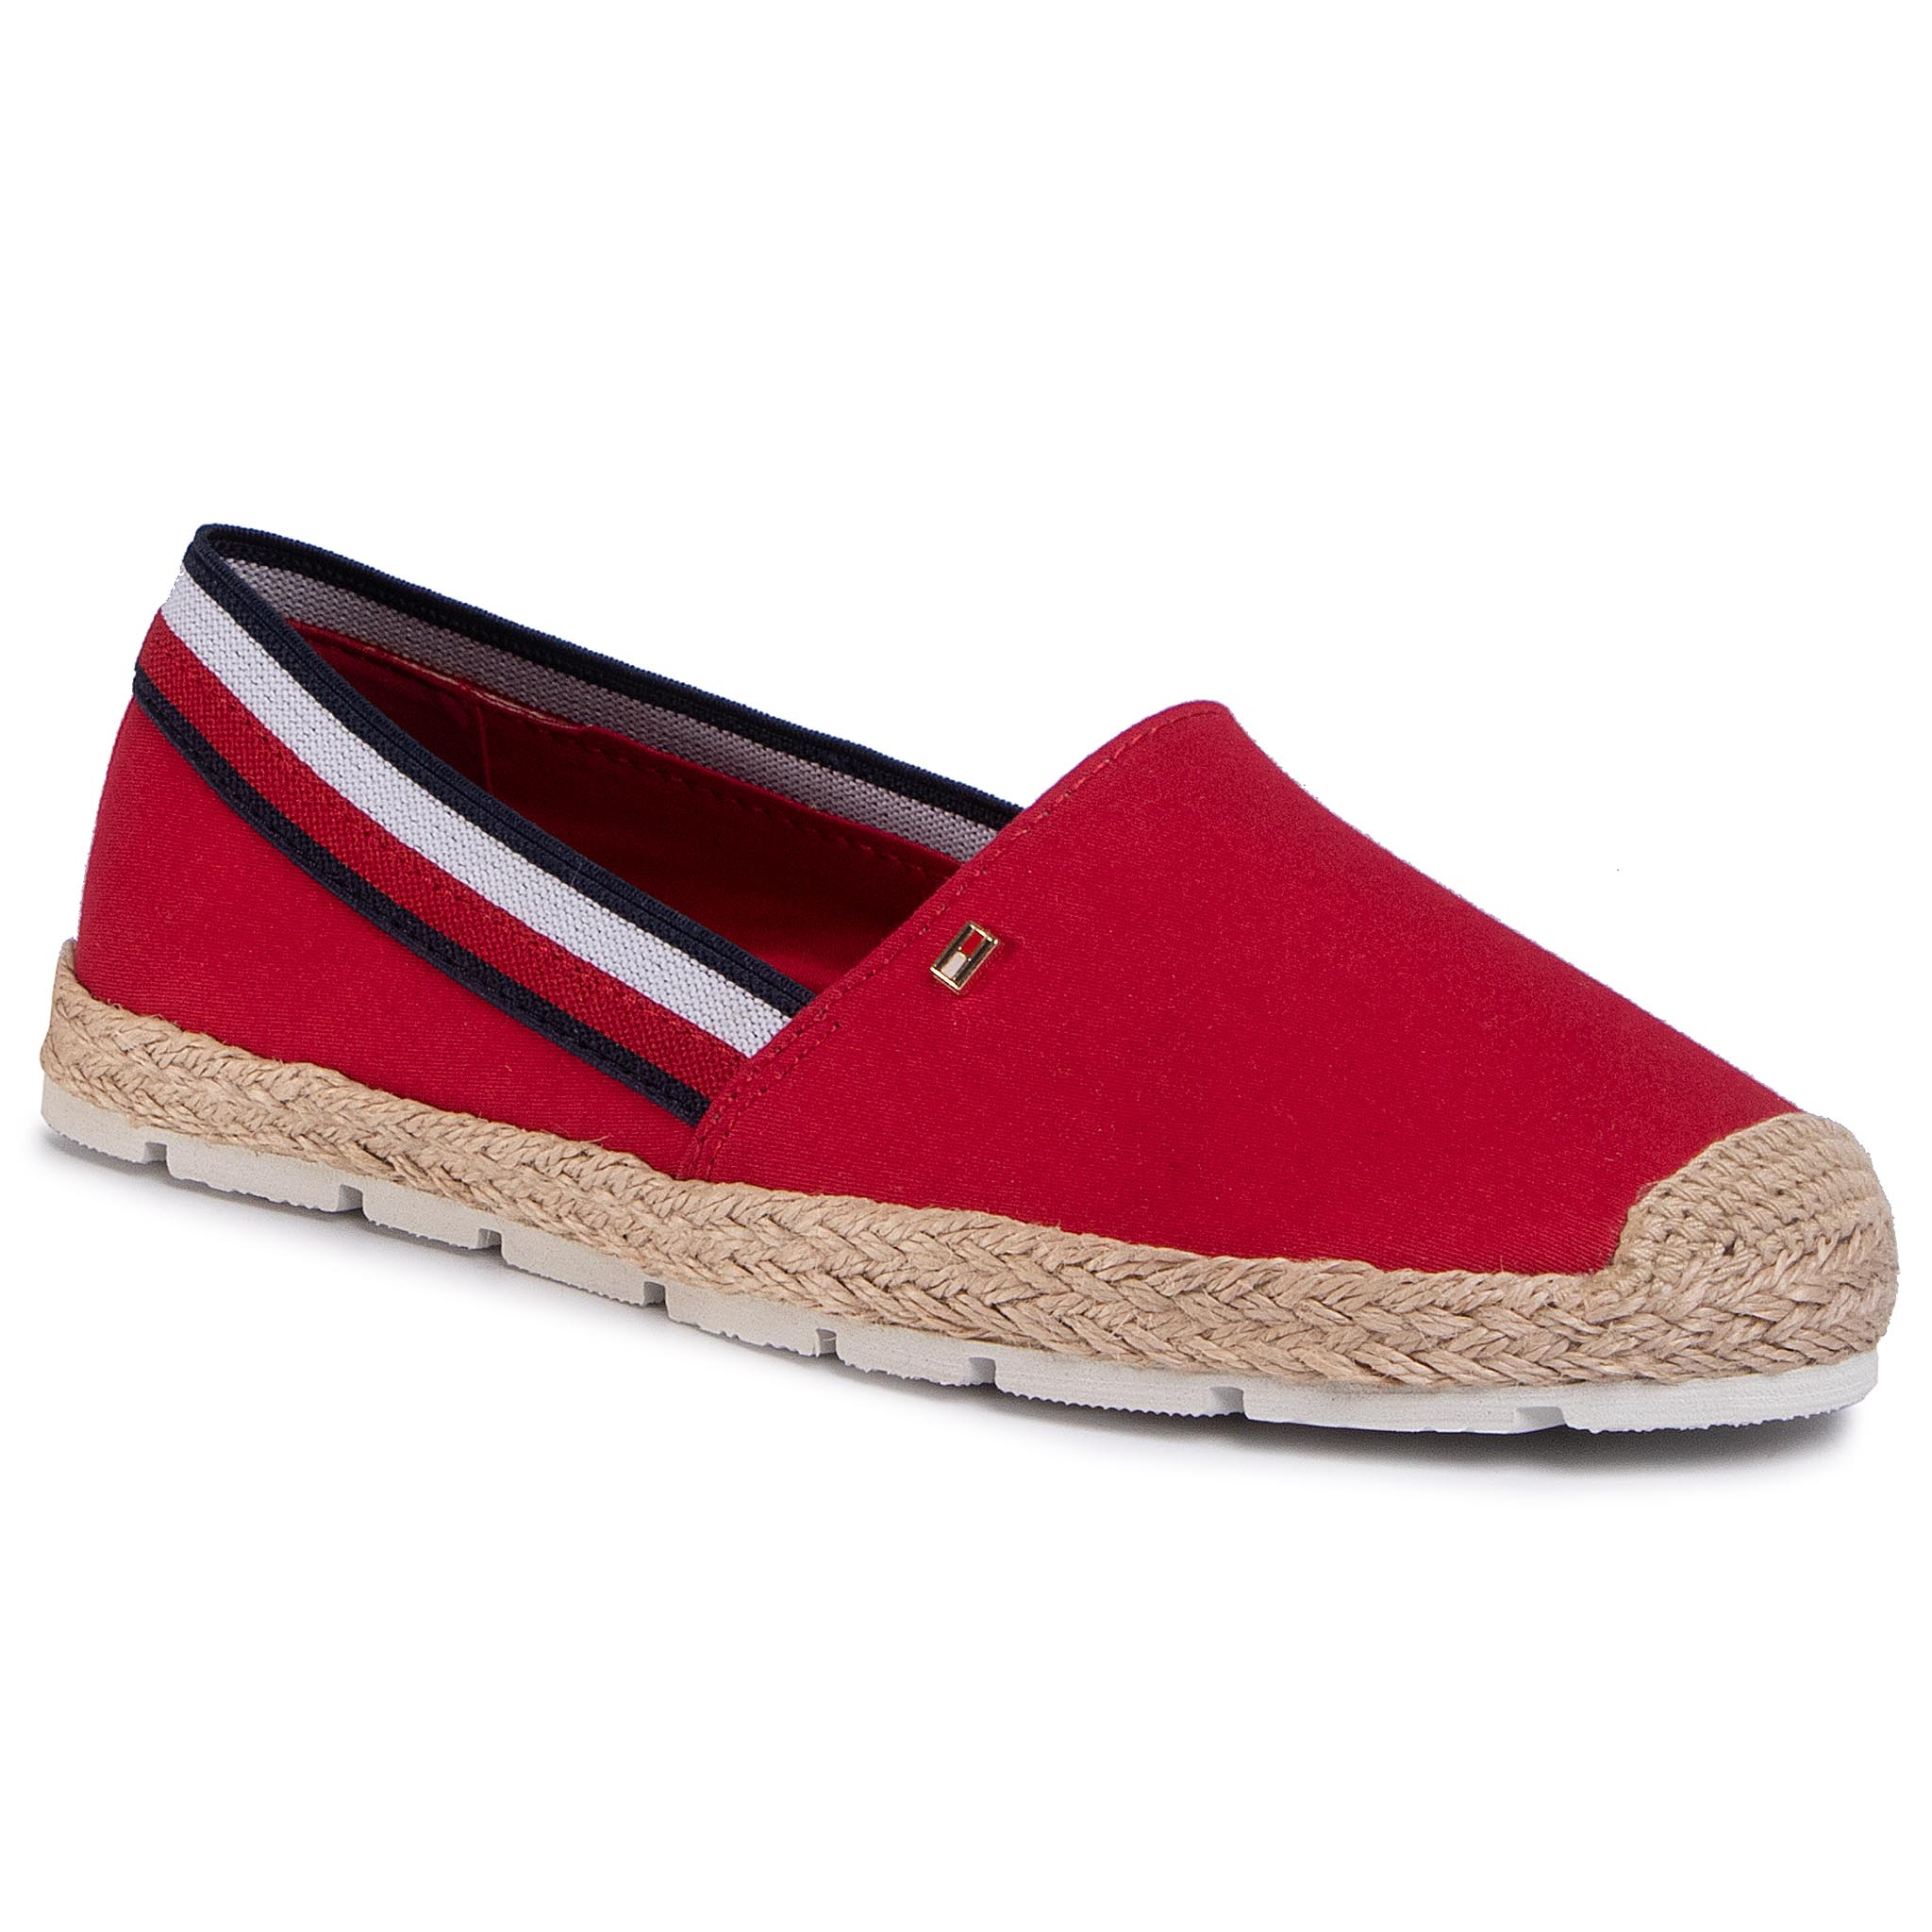 Espadrile TOMMY HILFIGER - Basic Tommy Corporate Espadrille FW0FW04738 Primary Red XLG